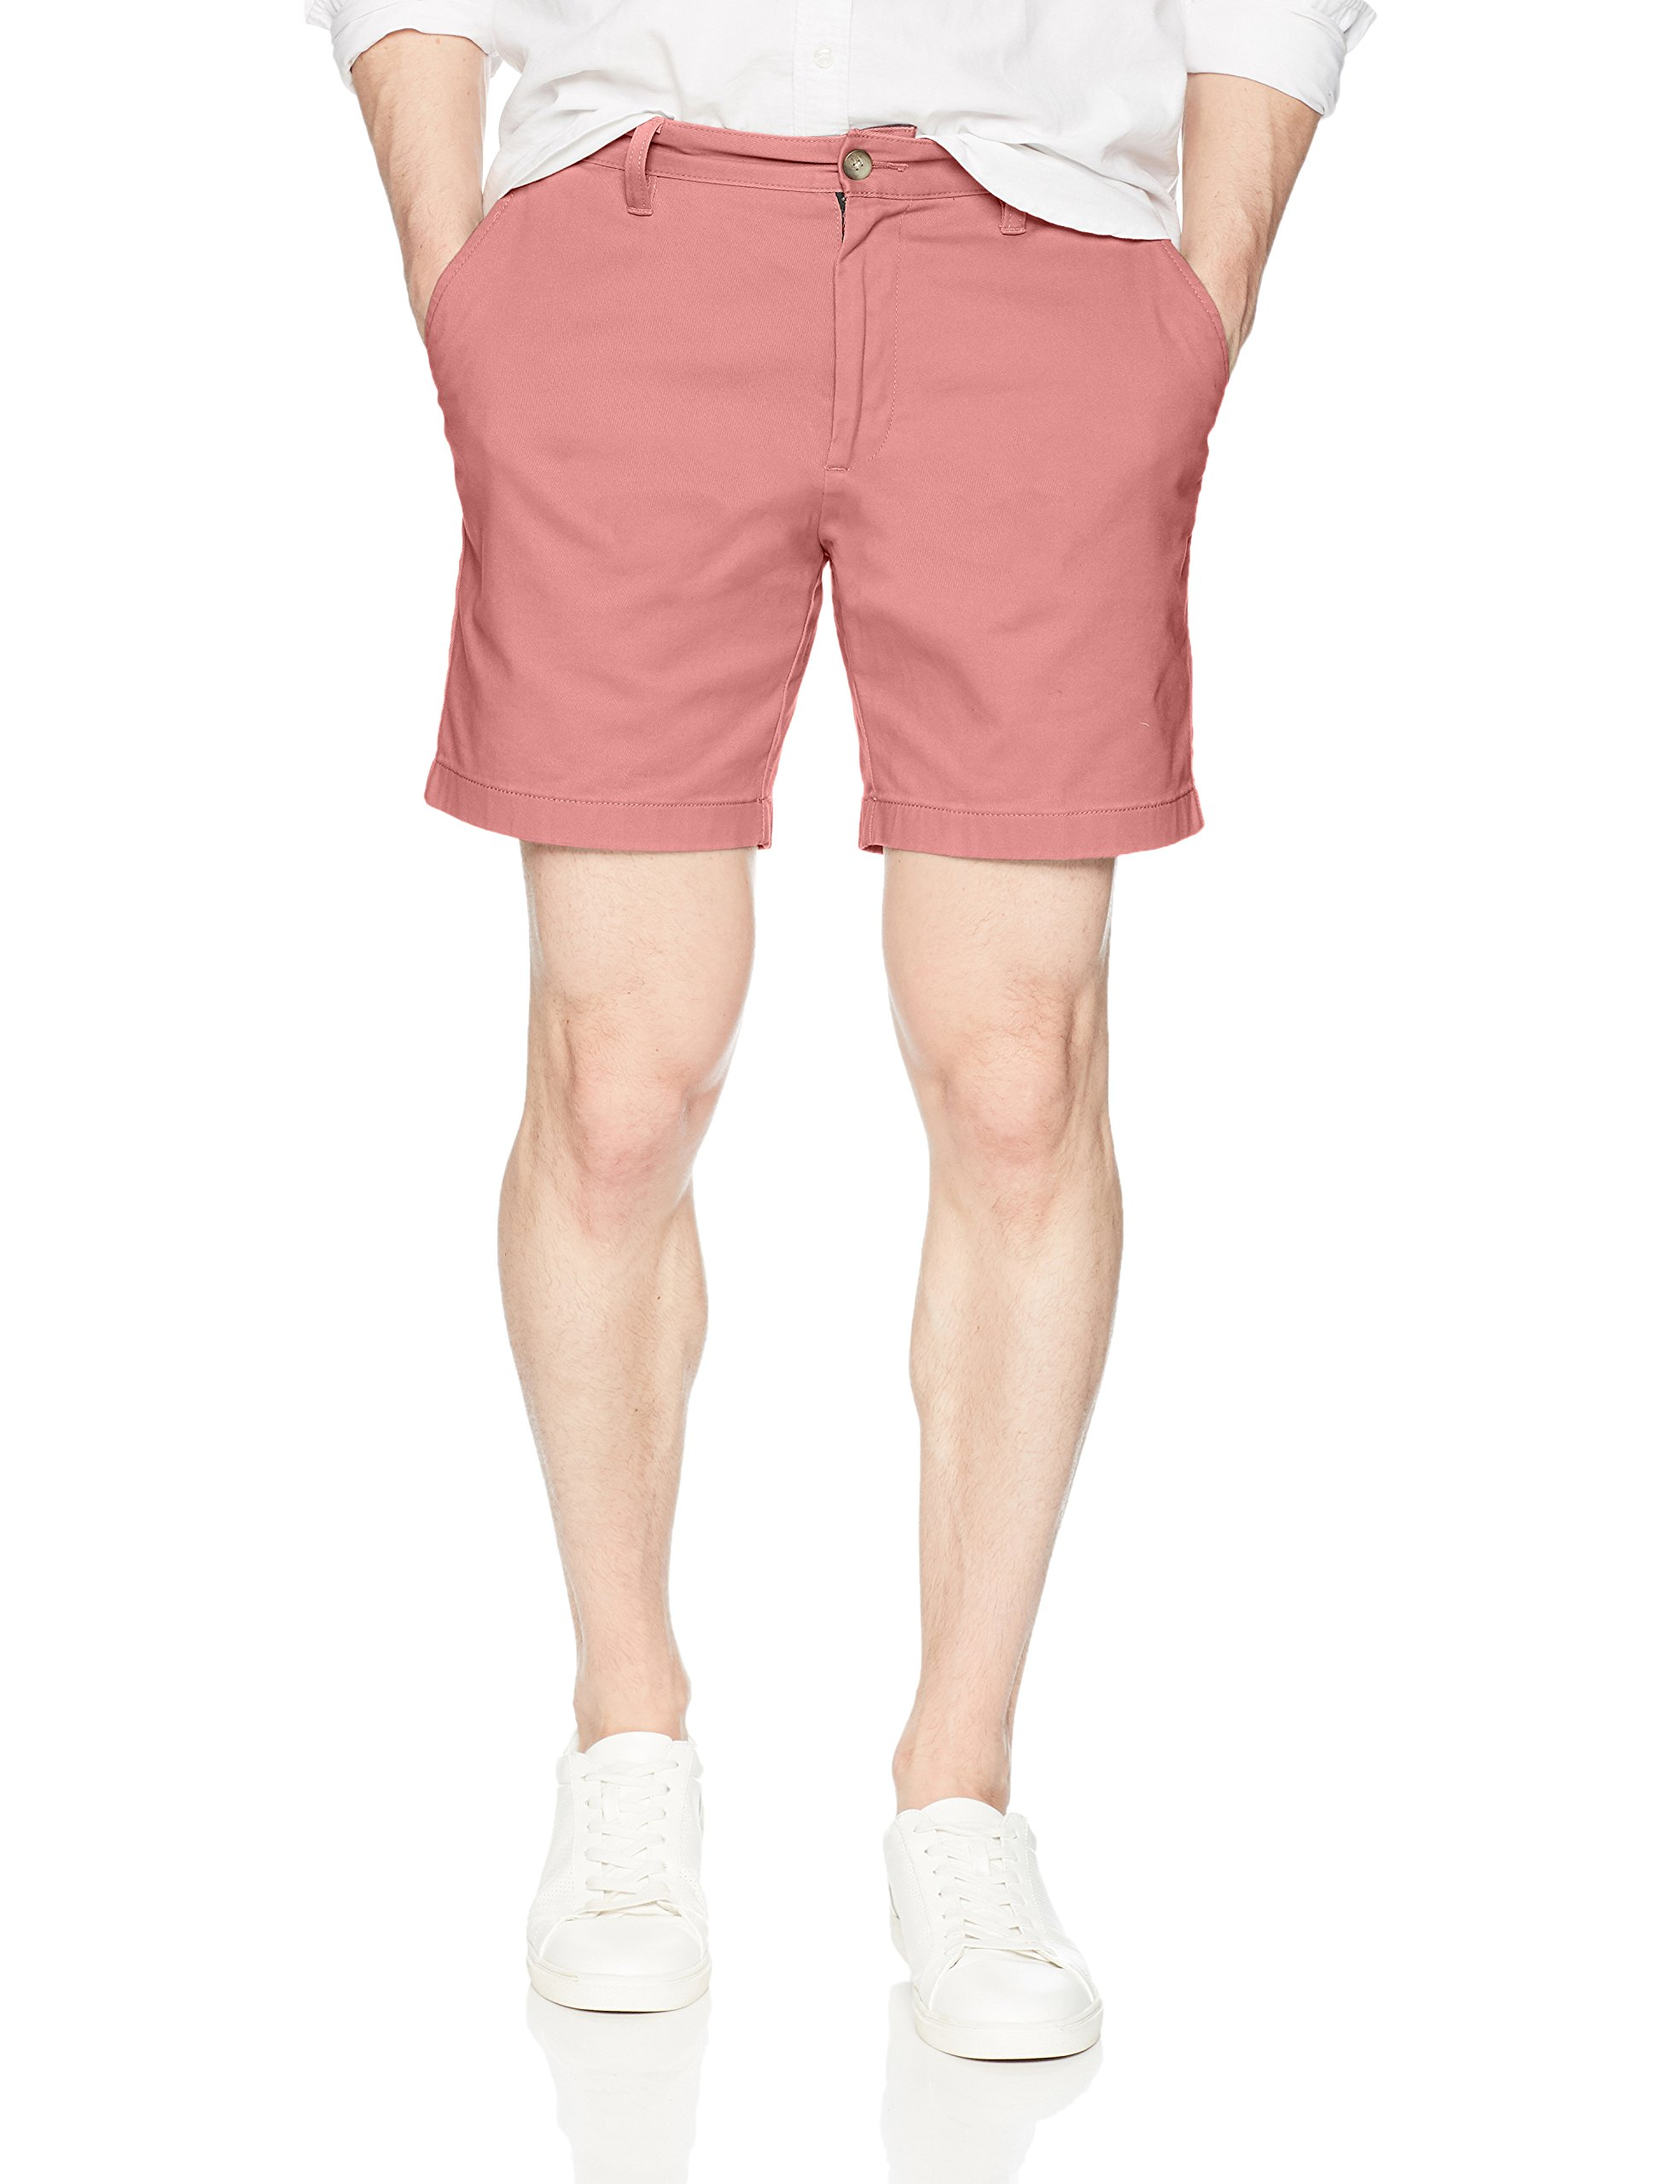 Nautica Men's Cotton Twill Flat Front Stretch Chino Short, Desert Carmine, 40W